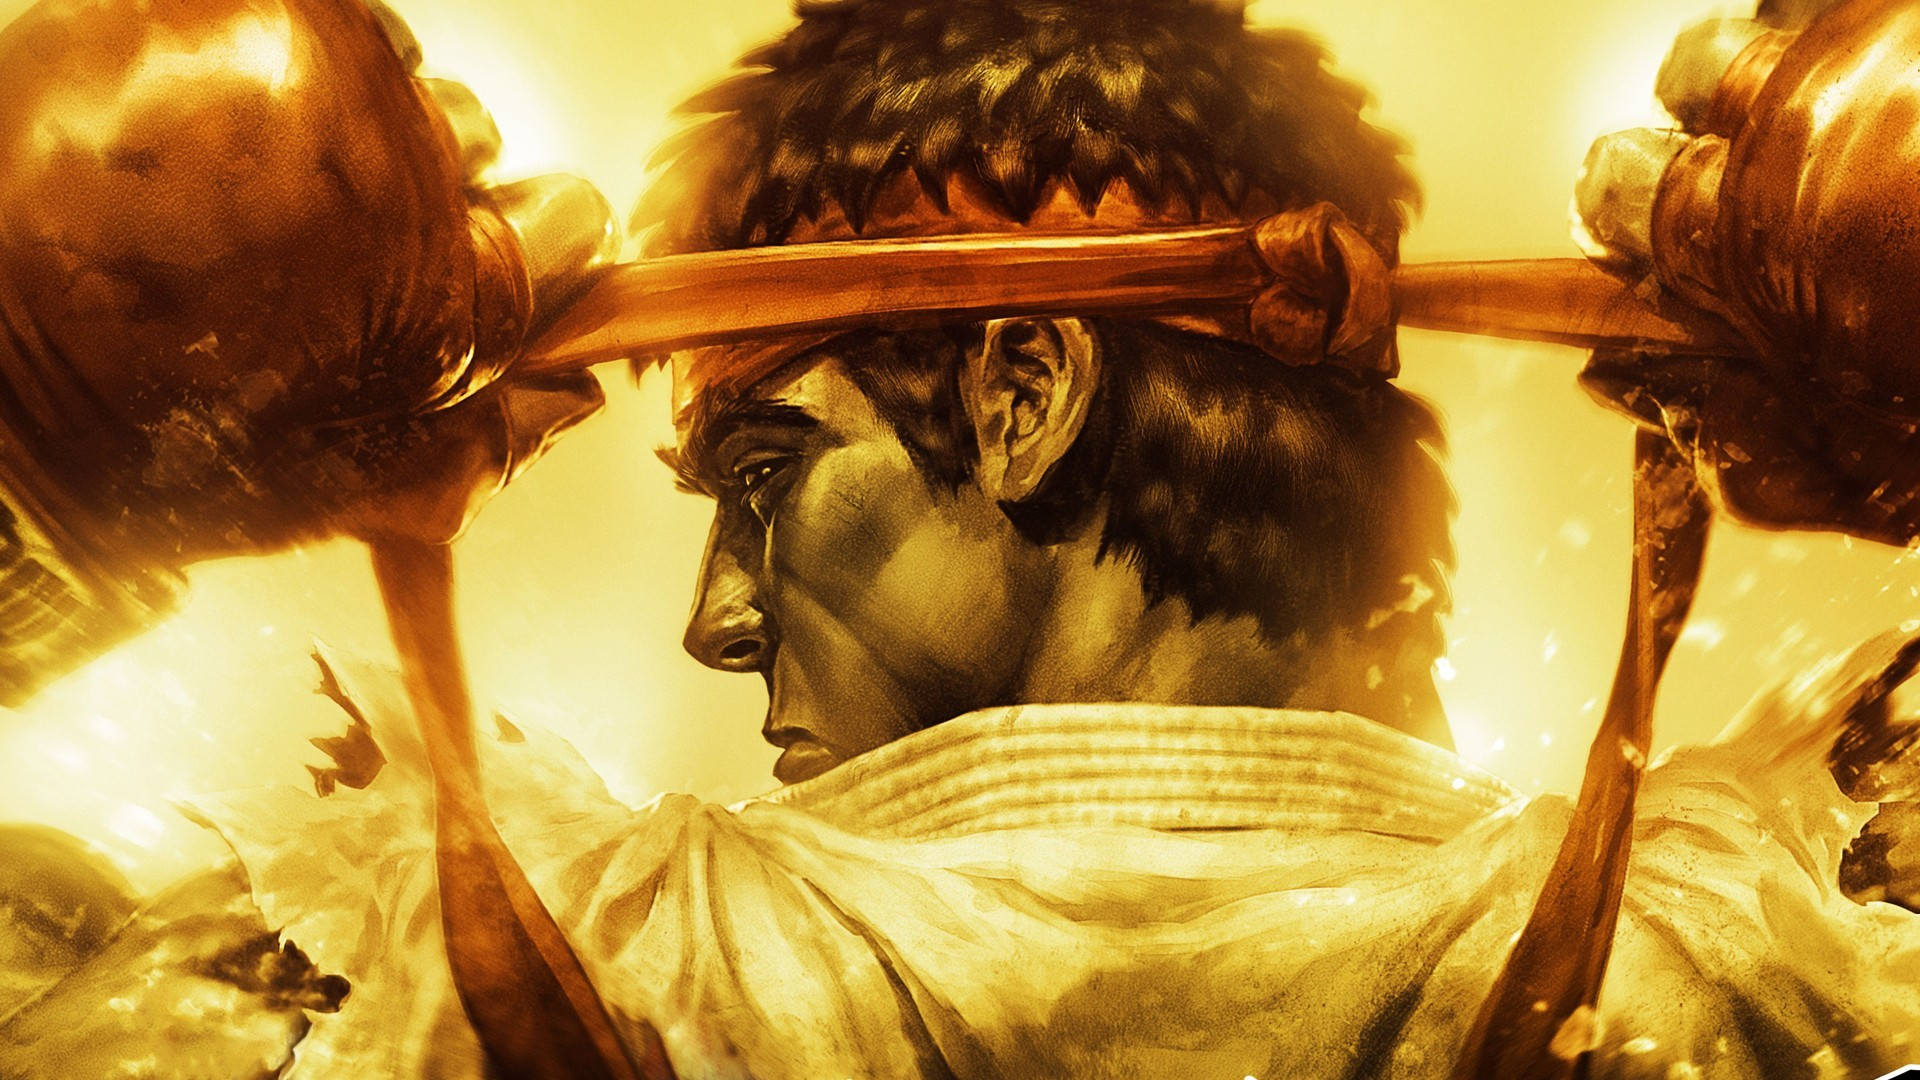 Street Fighter 4 Wallpapers: 4 Ultra Street Fighter IV HD Wallpapers